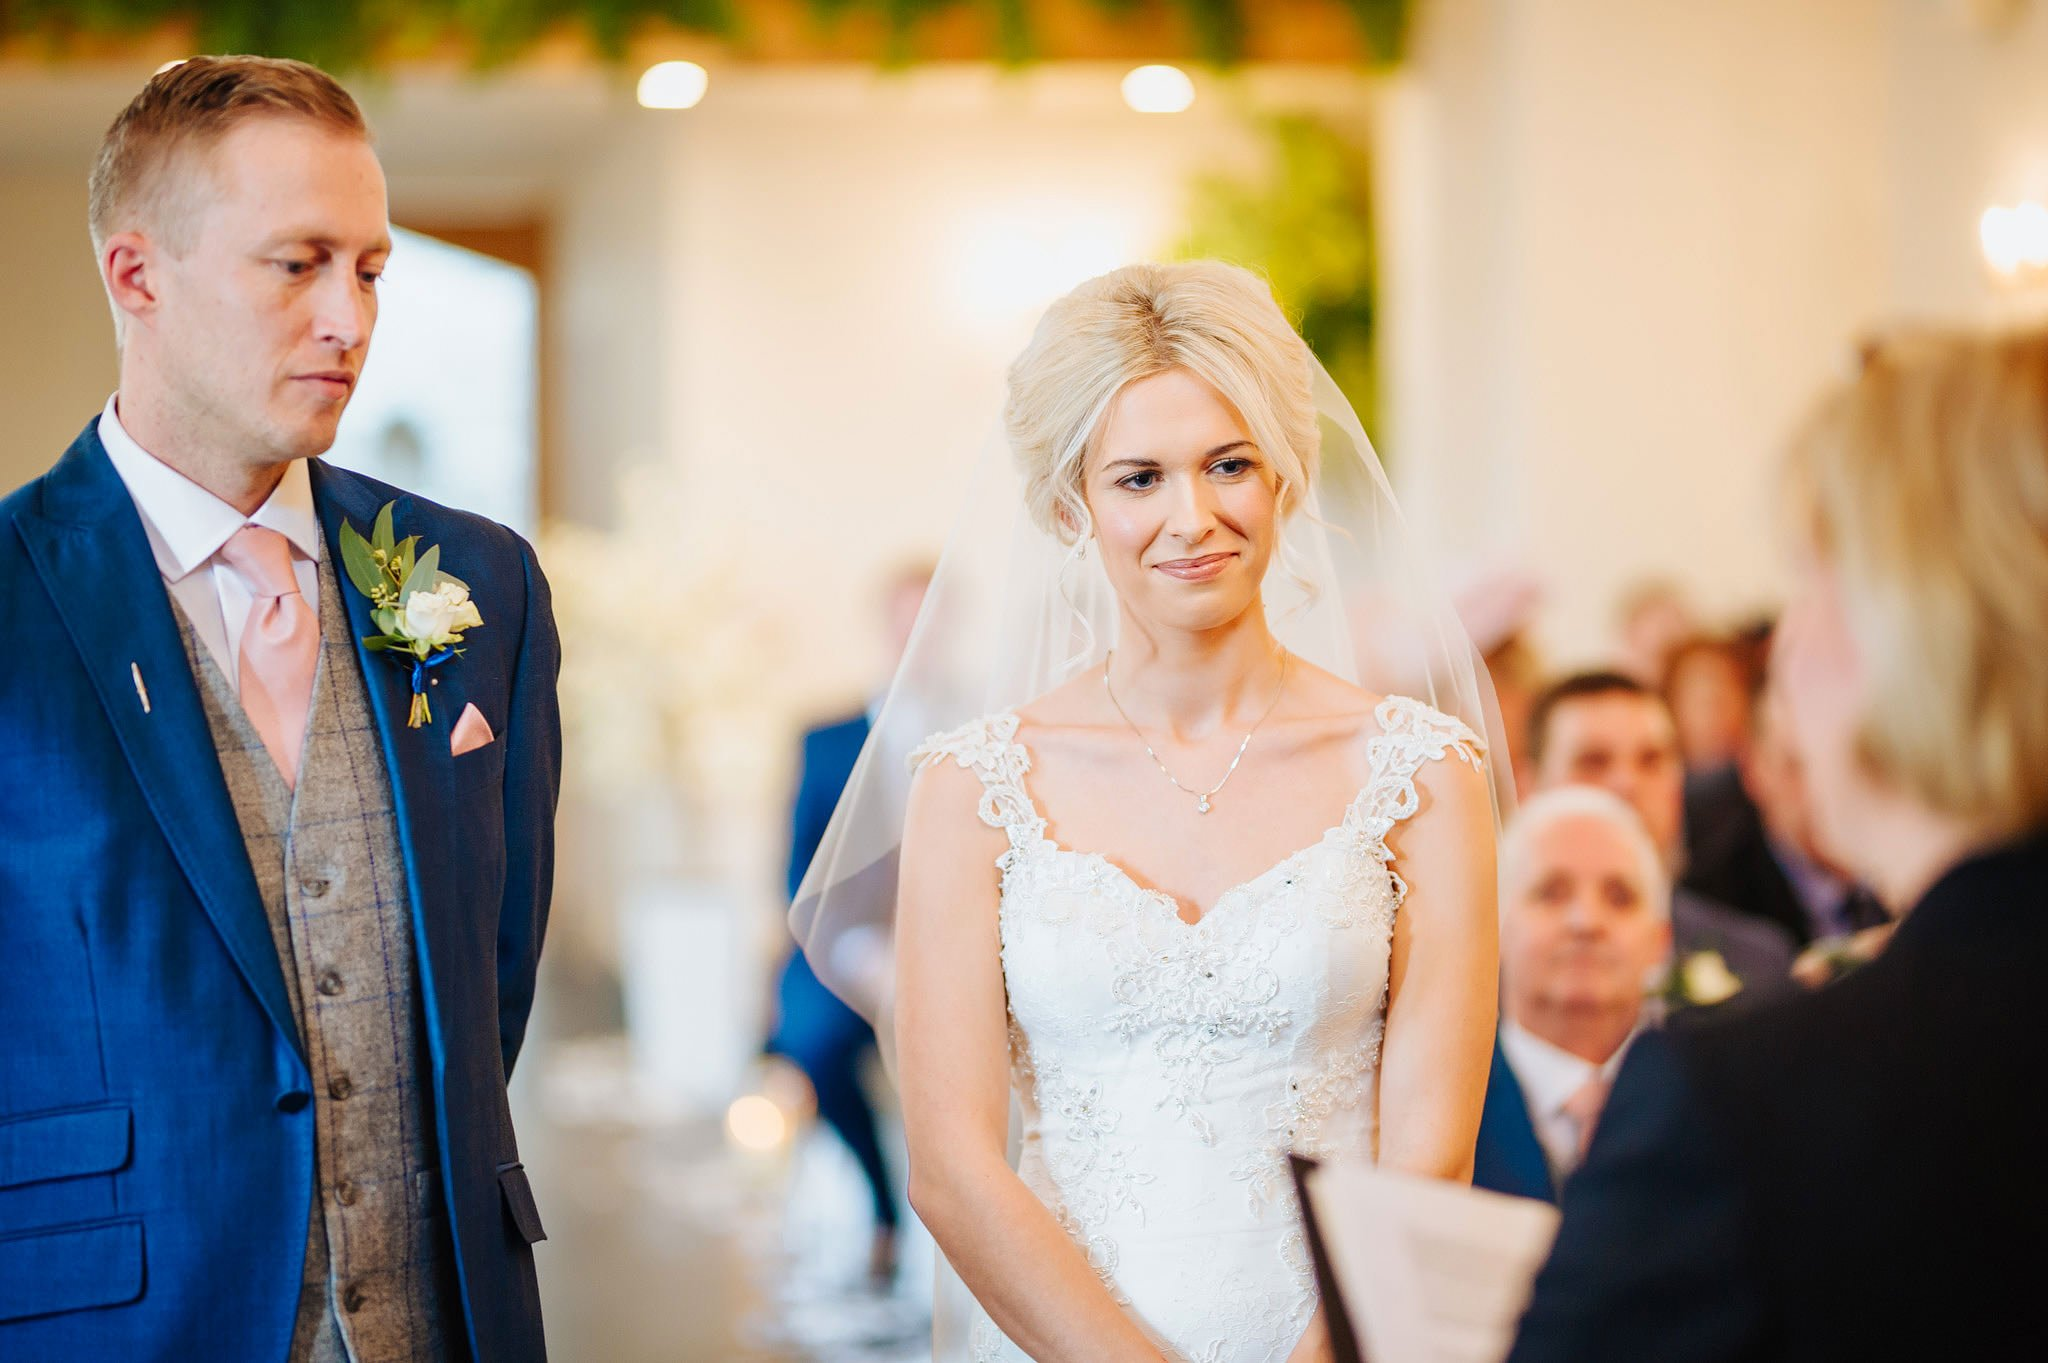 sigma 85mm art review wedding photography 102 - Sigma 85mm F1.4 ART review vs Wedding Photography